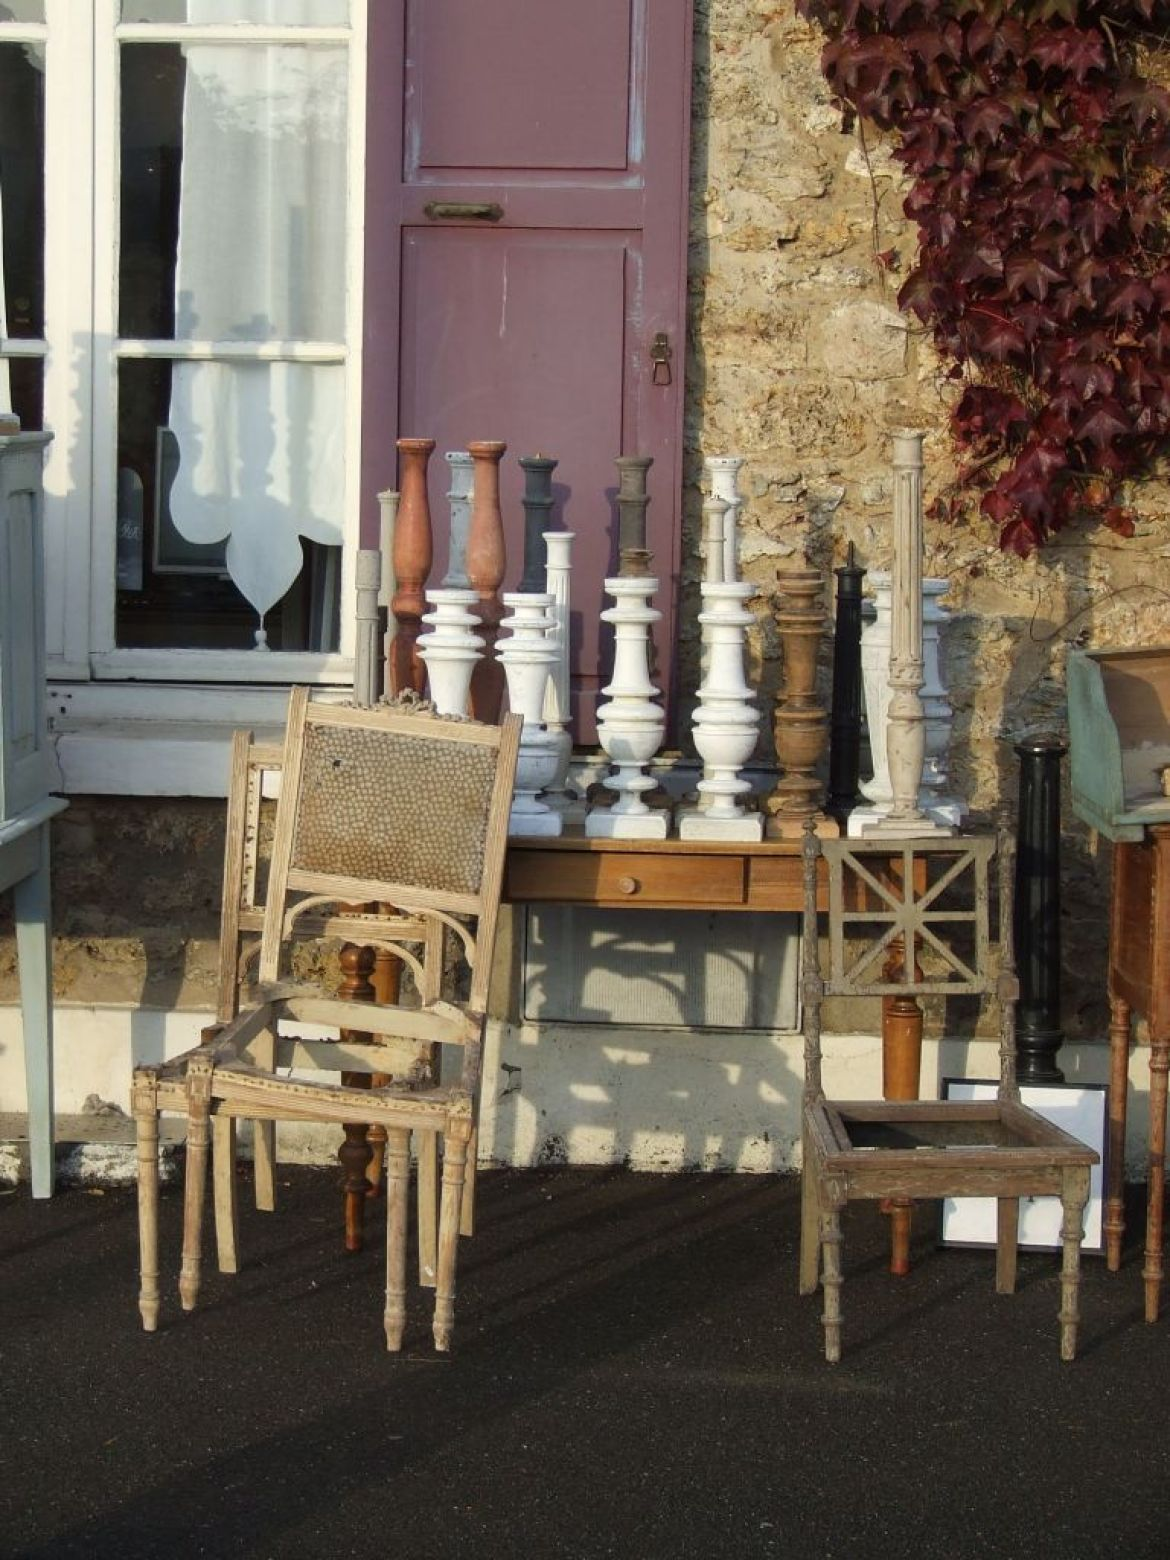 chairs and candlesticks piled up at a brocante fair